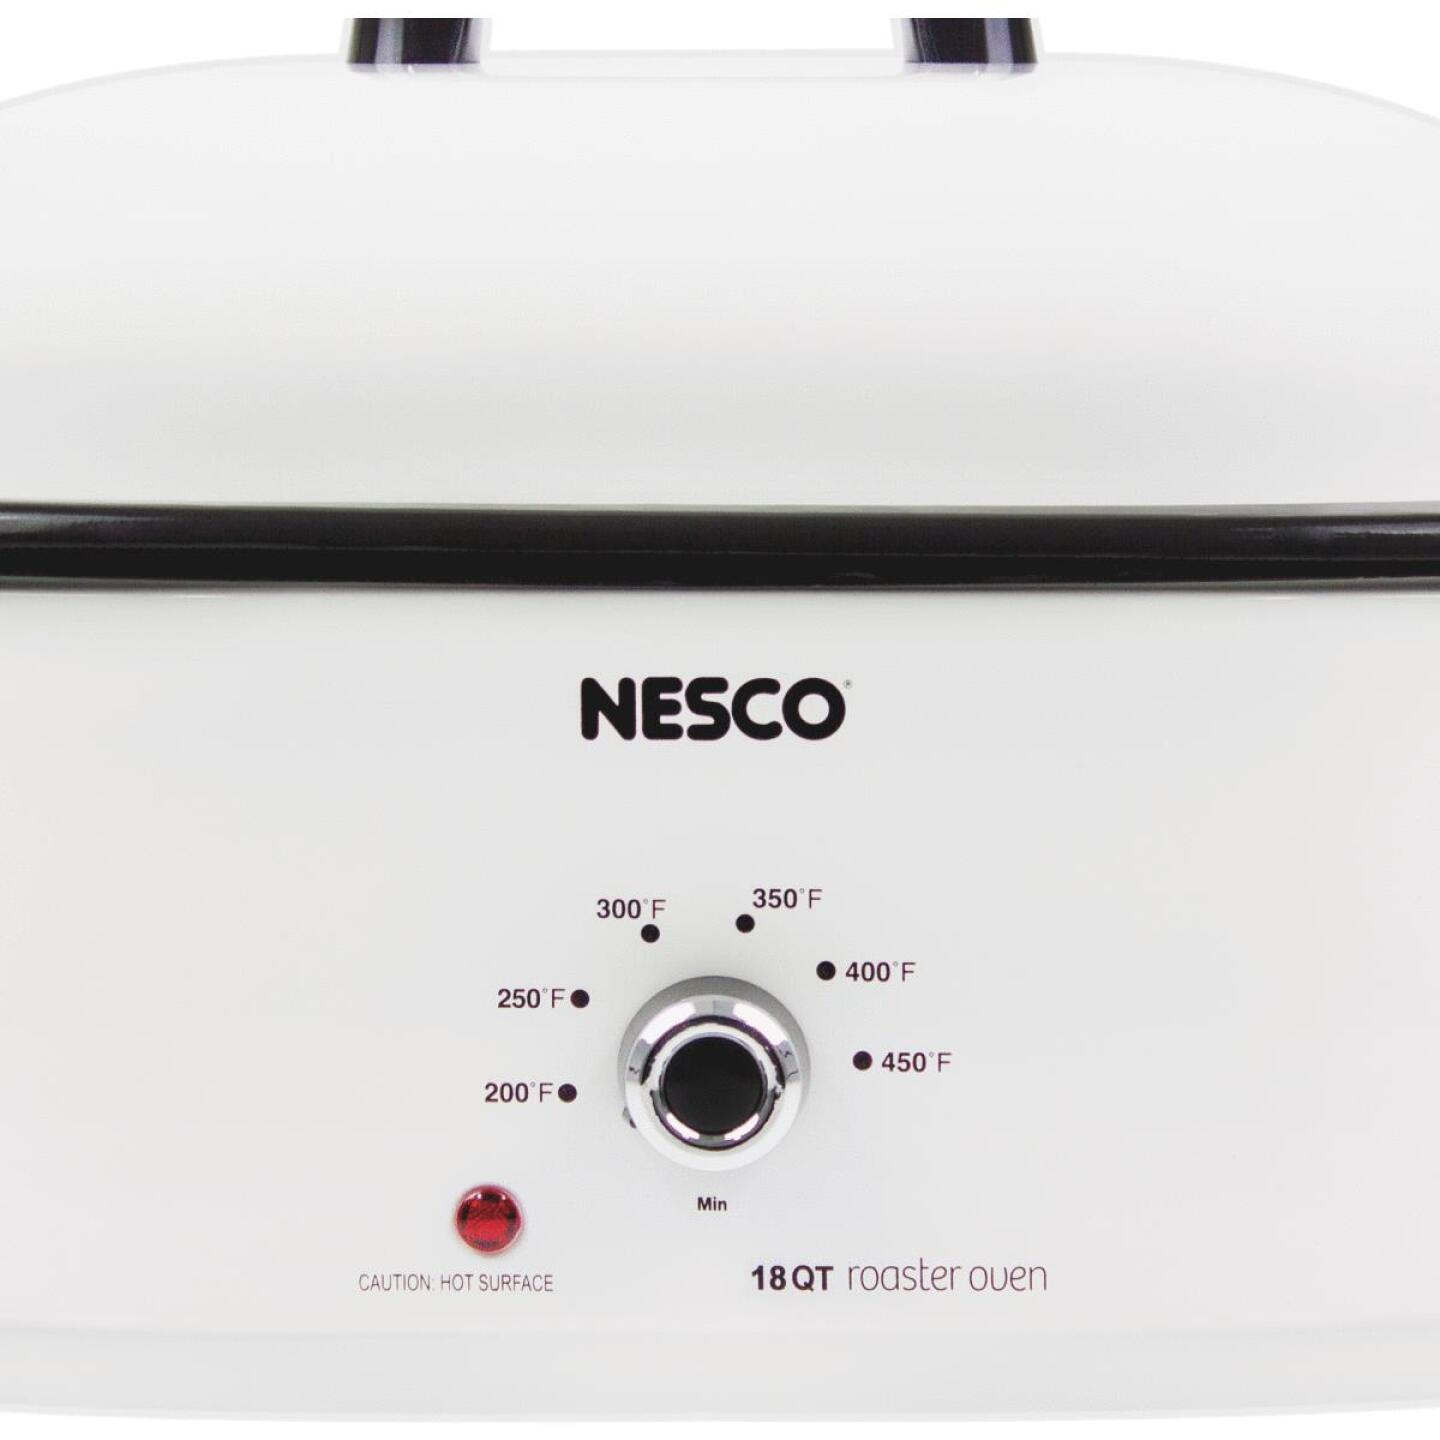 Nesco 18 Qt. Ivory Electric Roaster Image 2